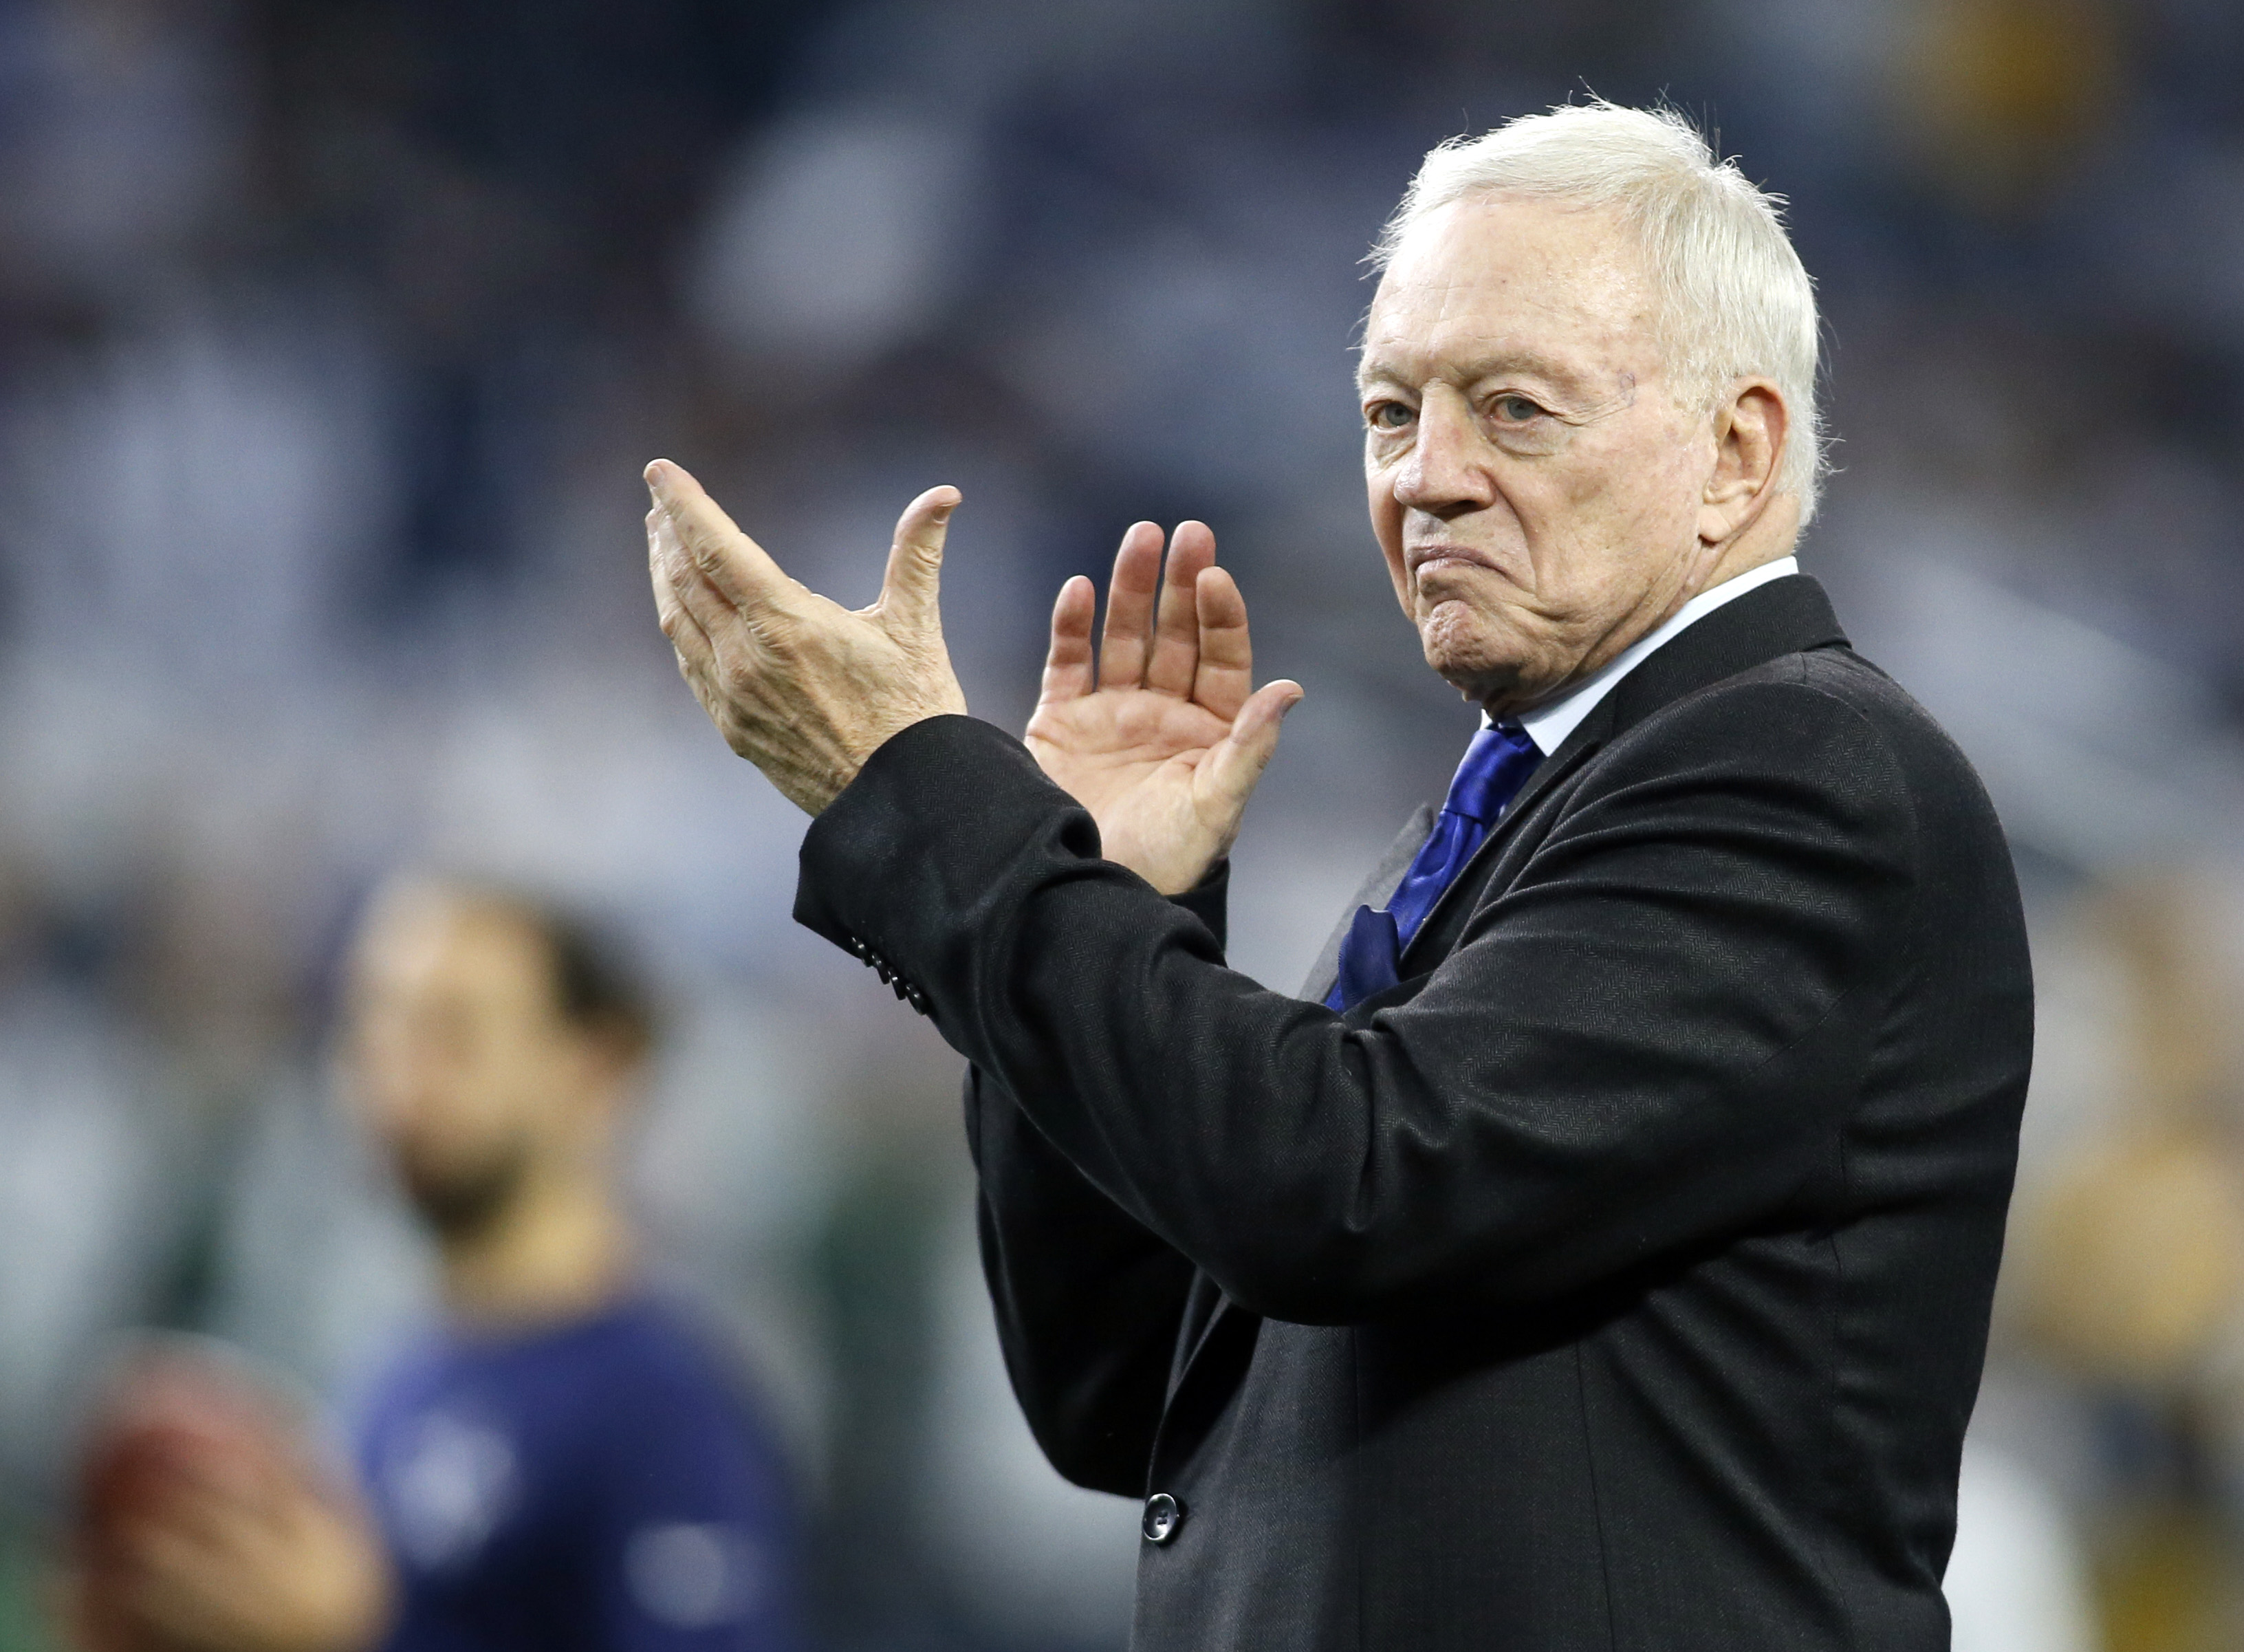 Jan 15, 2017; Arlington, TX, USA; Dallas Cowboys owner Jerry Jones on the field before the game against the Green Bay Packers in the NFC Divisional playoff game at AT&T Stadium. Mandatory Credit: Tim Heitman-USA TODAY Sports